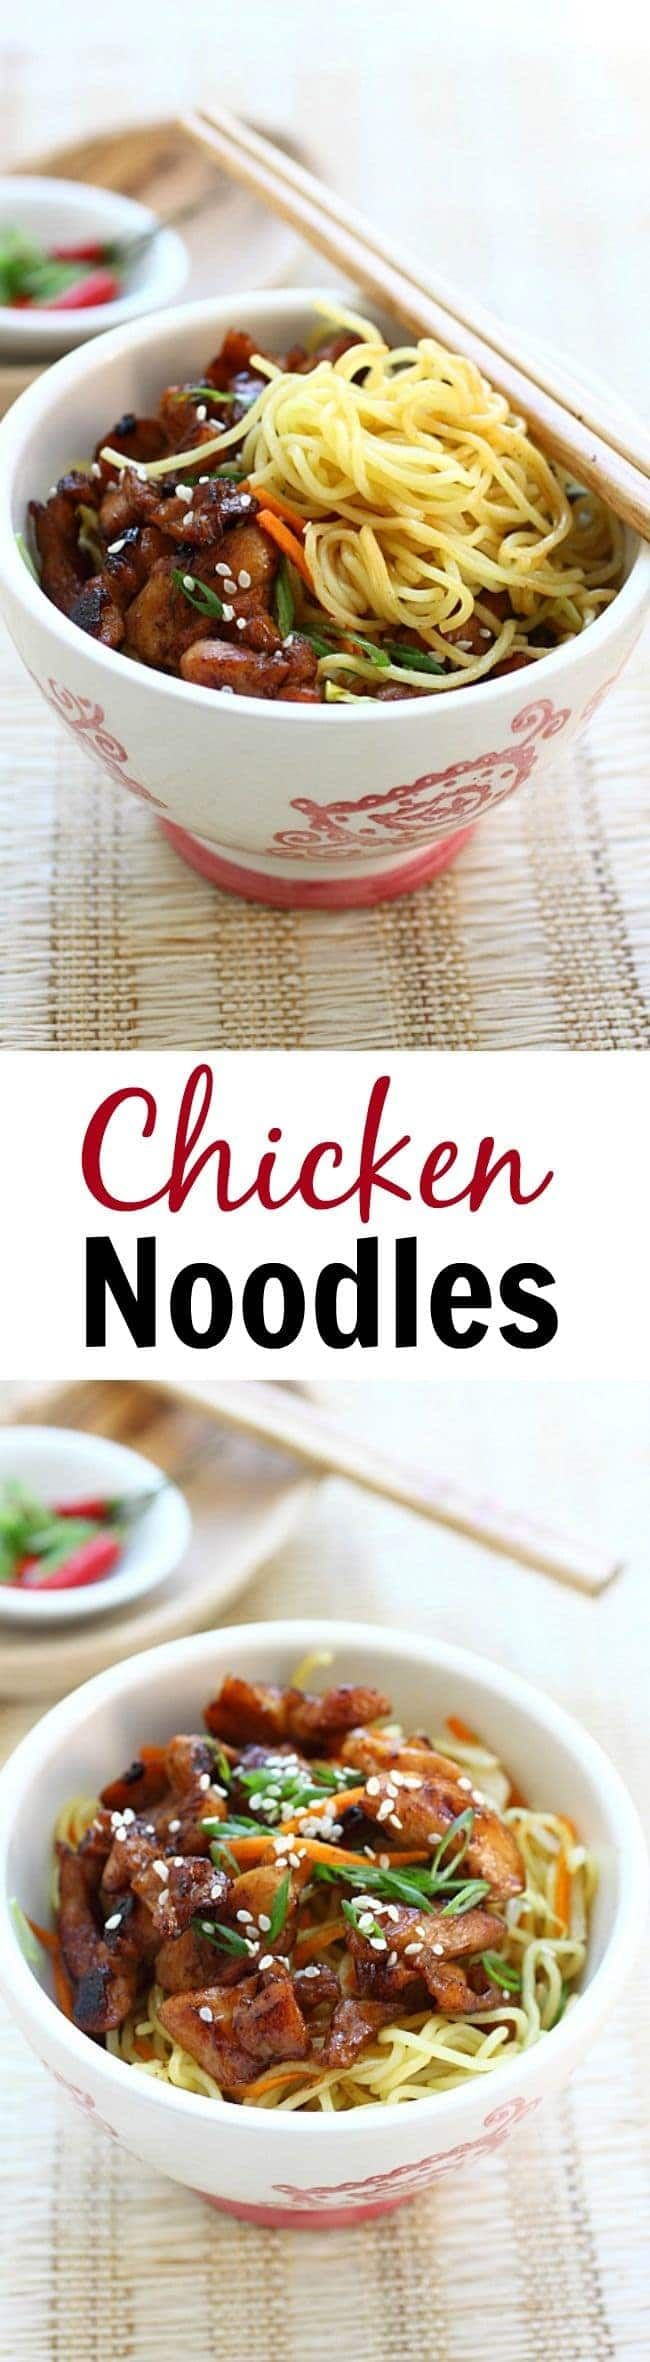 Chicken Noodles – Stir-fried chicken noodles with chicken and egg noodles. This easy chicken noodles recipe is delicious, easy to make, and perfect for weeknight dinner   rasamalaysia.com